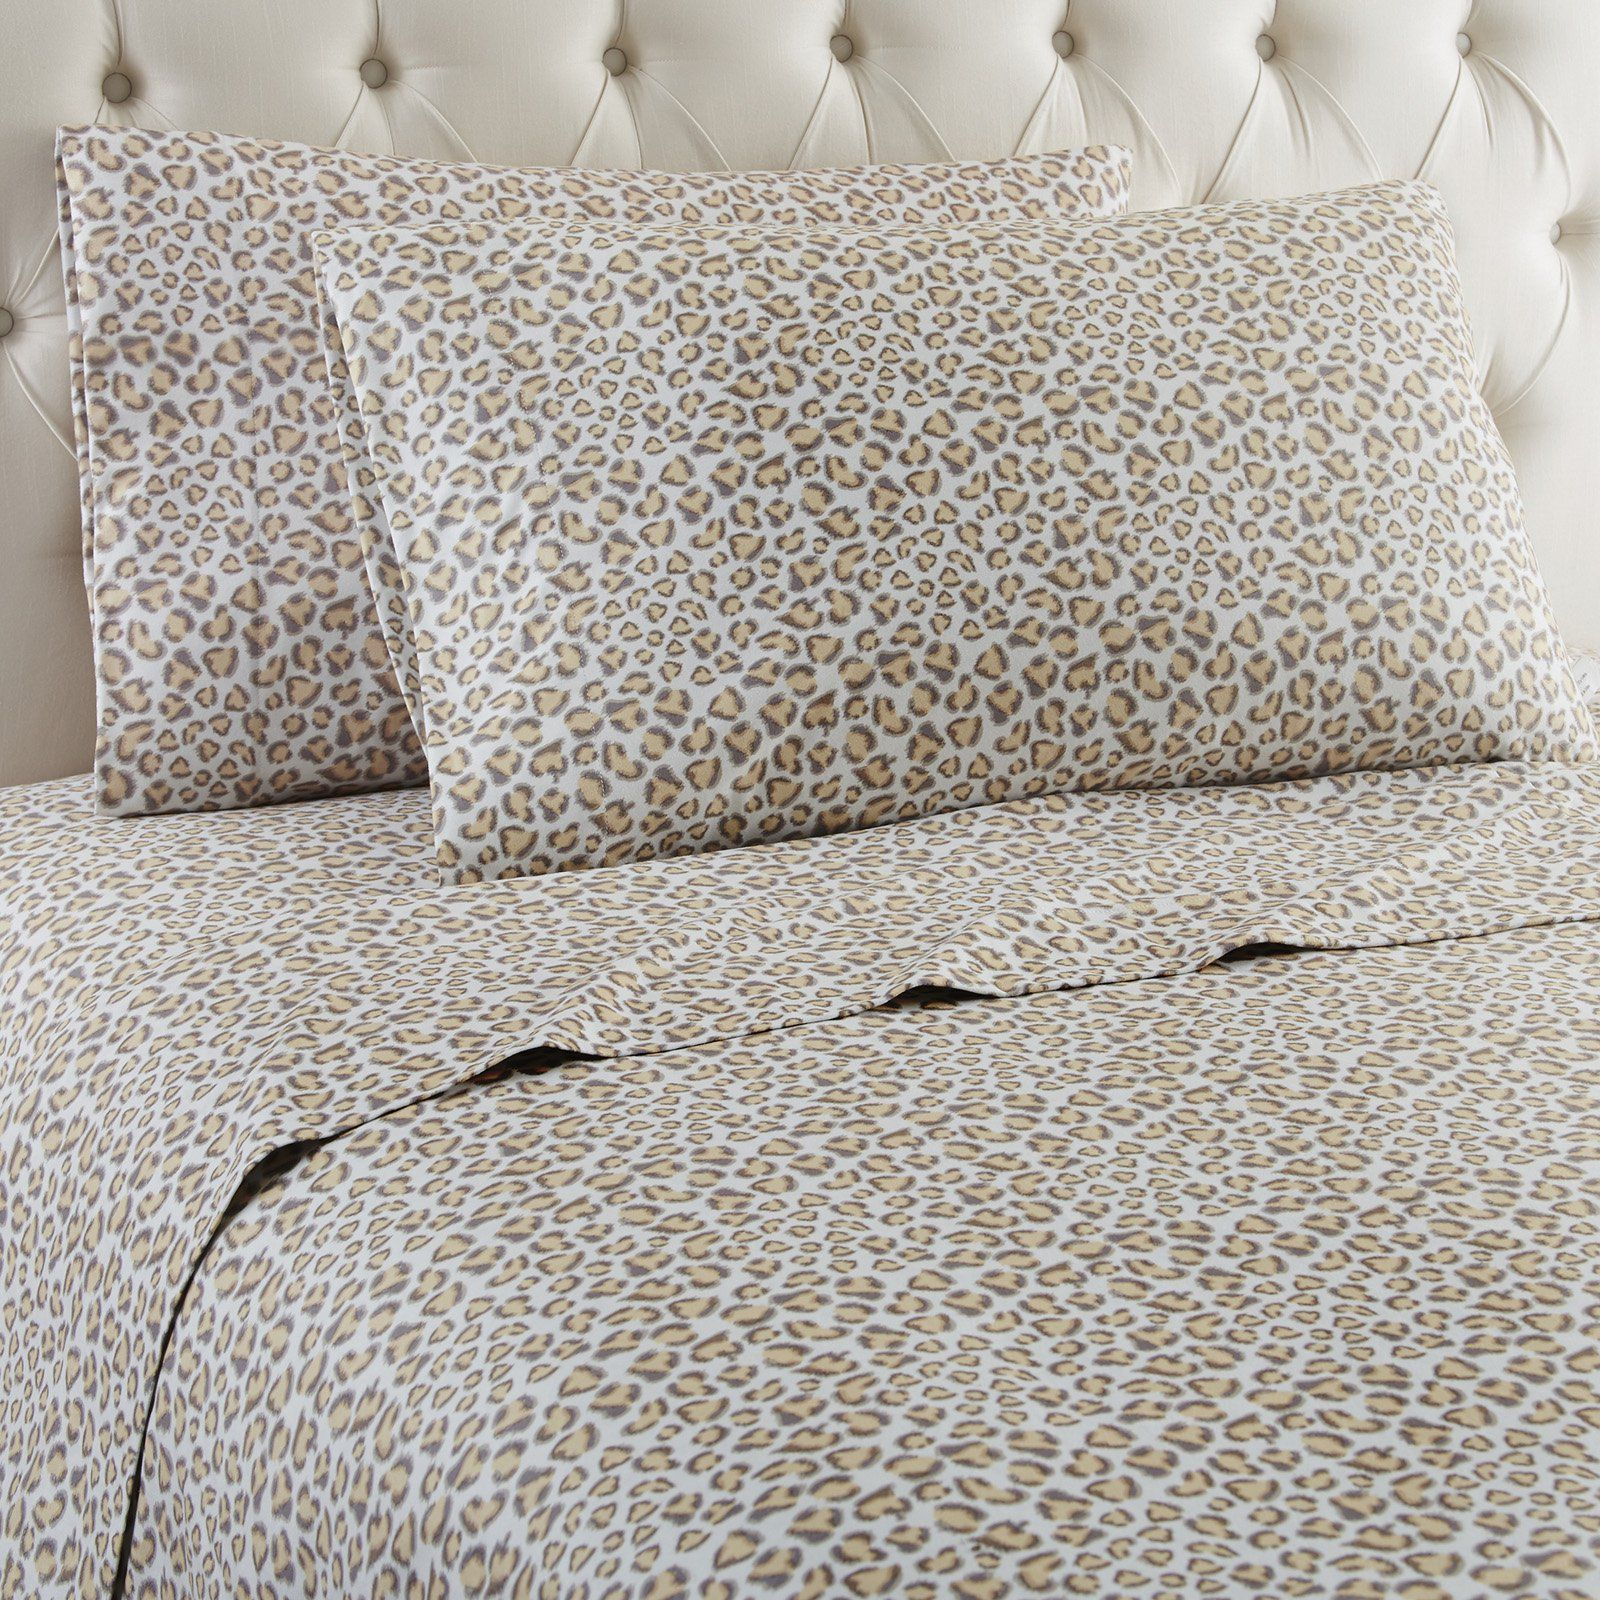 Leopard Sheet Set By Micro Flannel King Sheet Sets California King Sheet Sets Sheet Sets Full